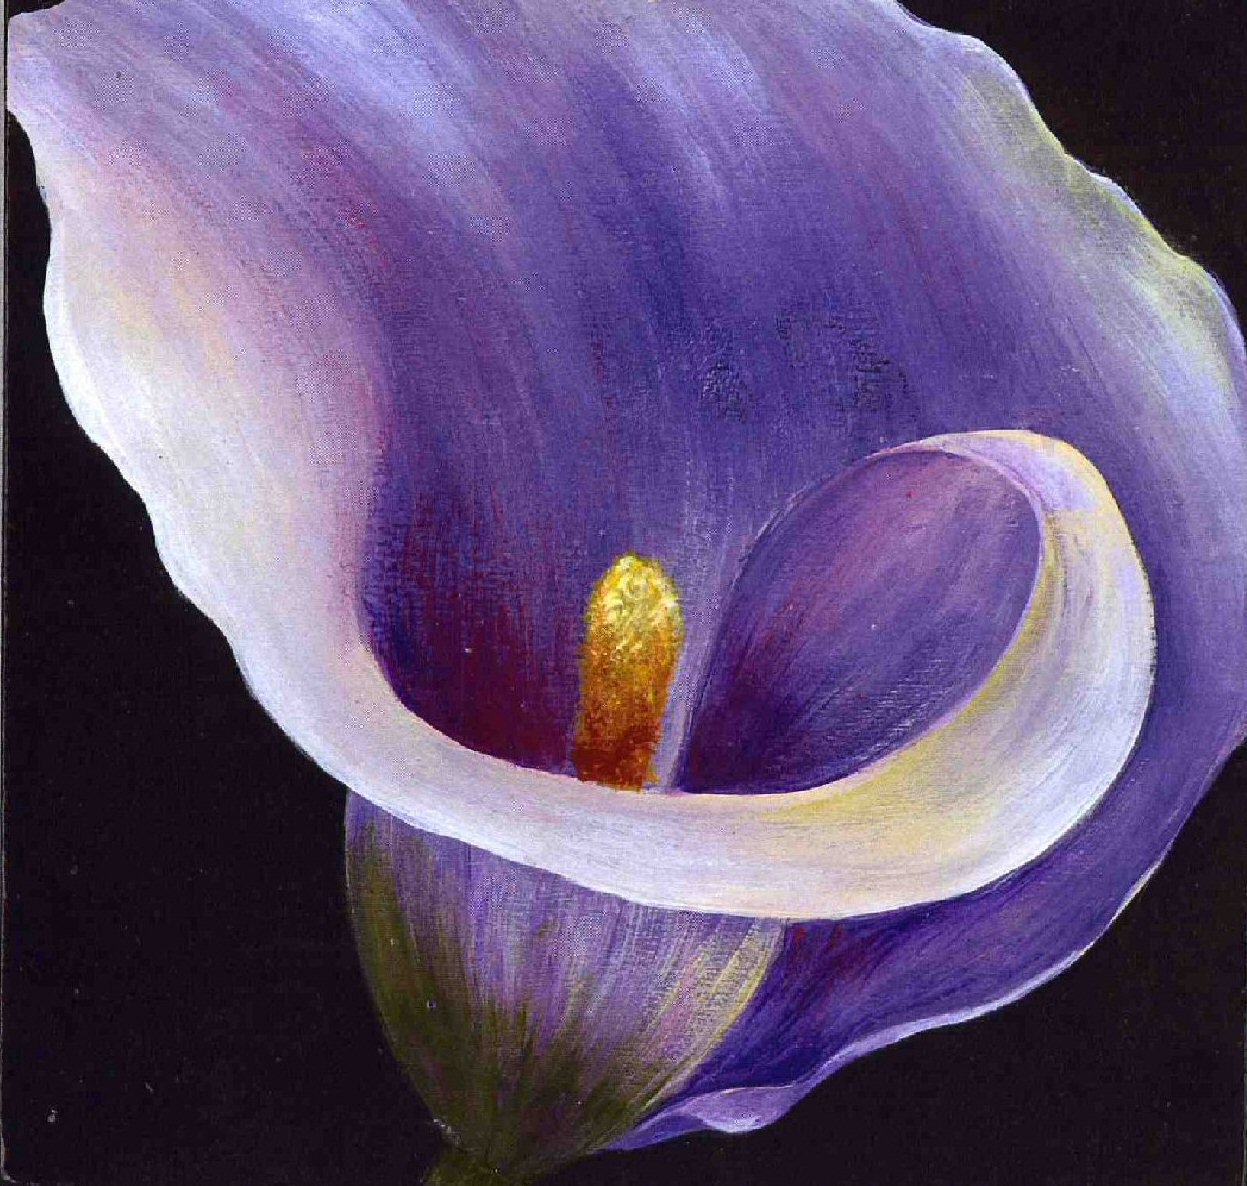 Purple calla lily flower izmirmasajfo Image collections